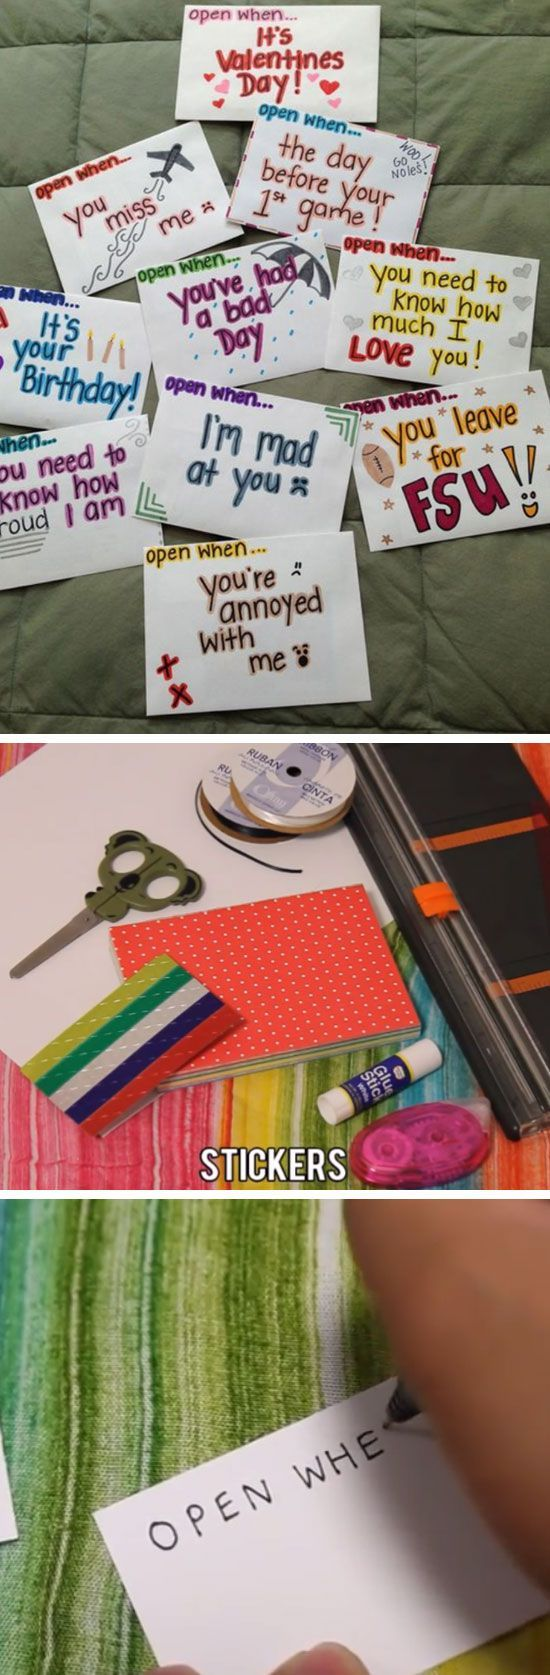 Best 25 diy boyfriend gifts ideas on pinterest welcome home best 25 diy boyfriend gifts ideas on pinterest welcome home ideas for boyfriend boyfriend crafts and valentines day messages negle